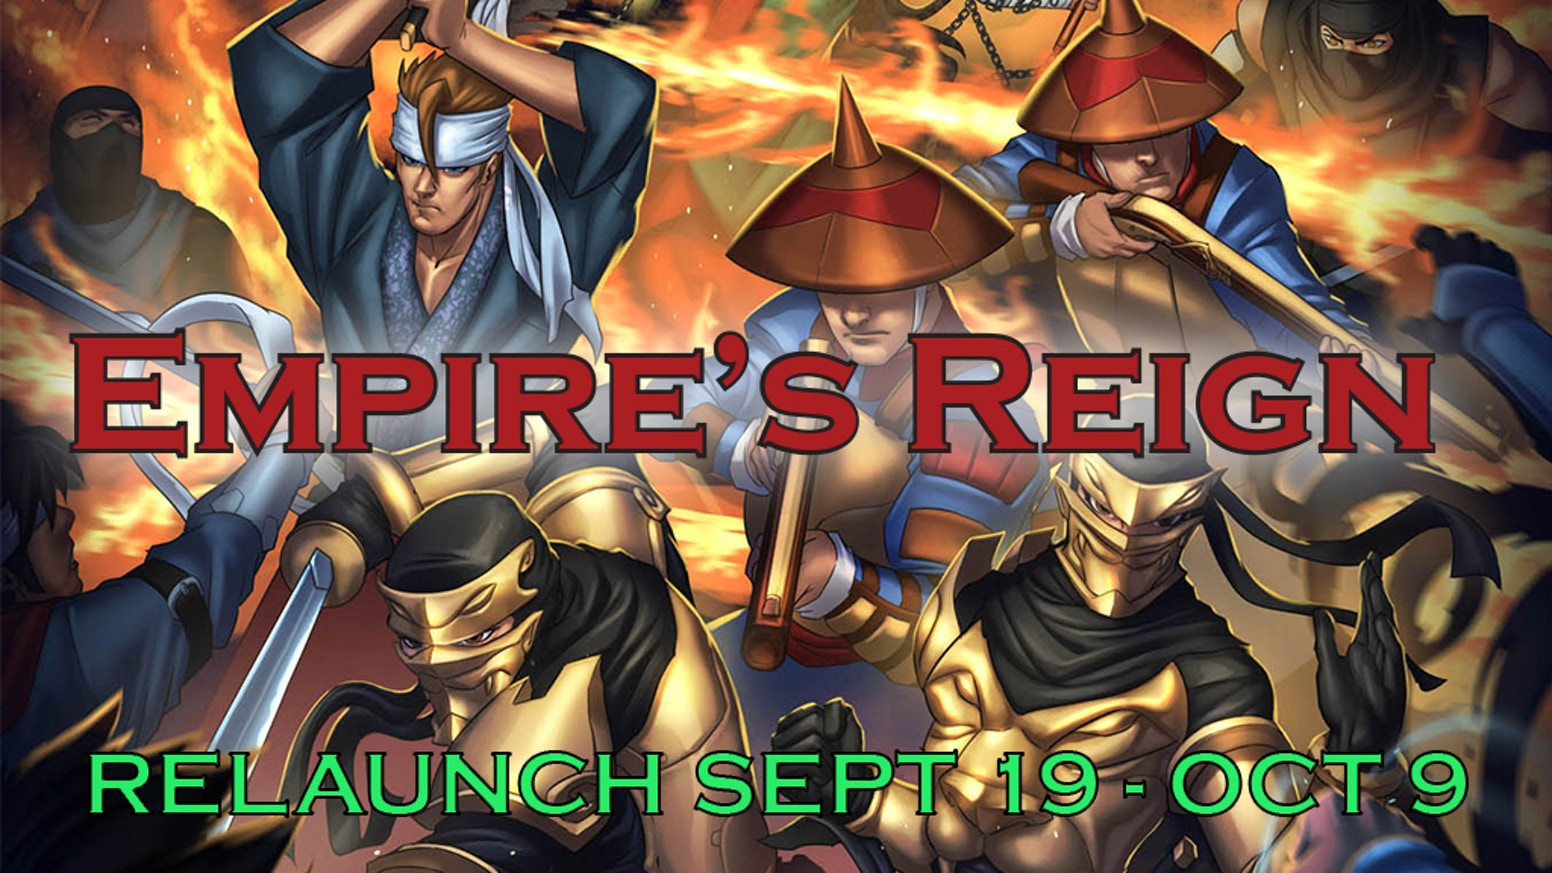 Expand the world of the Ninja Crusade and delve into the Empire's Reign! Meet new character types and new tactics to use in the war.